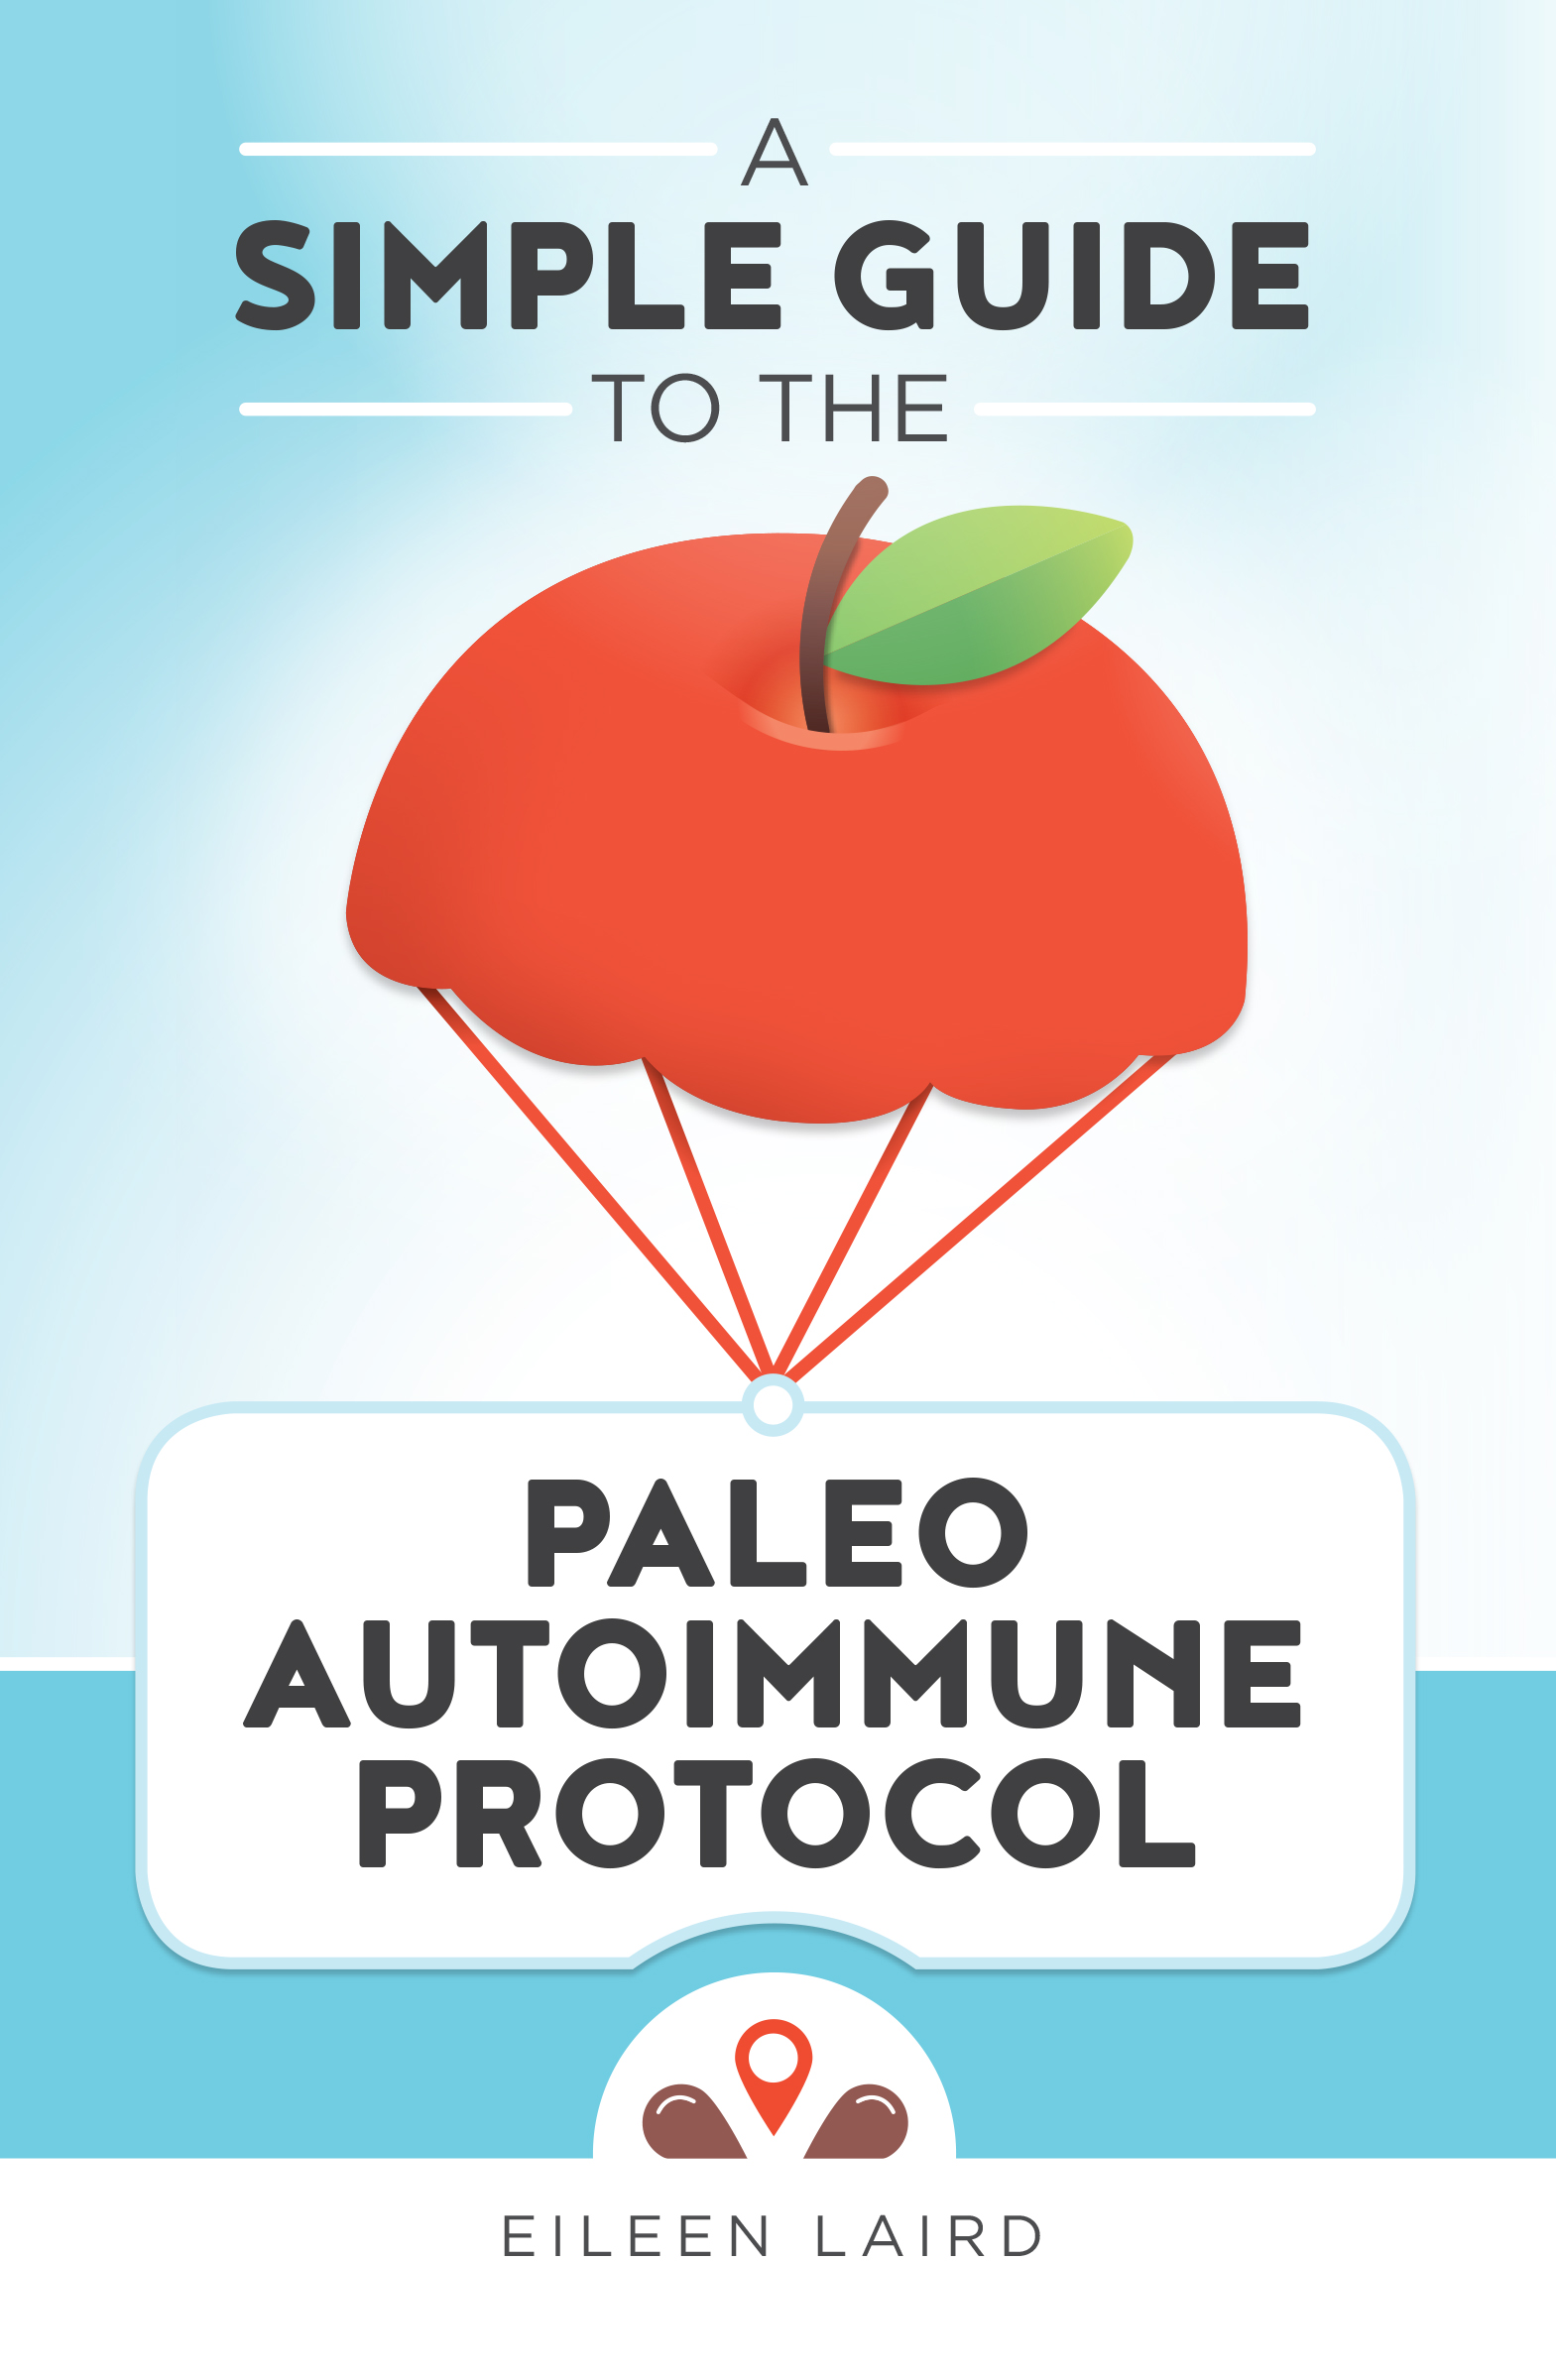 A Simple Guide to the Paleo Autoimmune Protocol (AIP) | Phoenix Helix